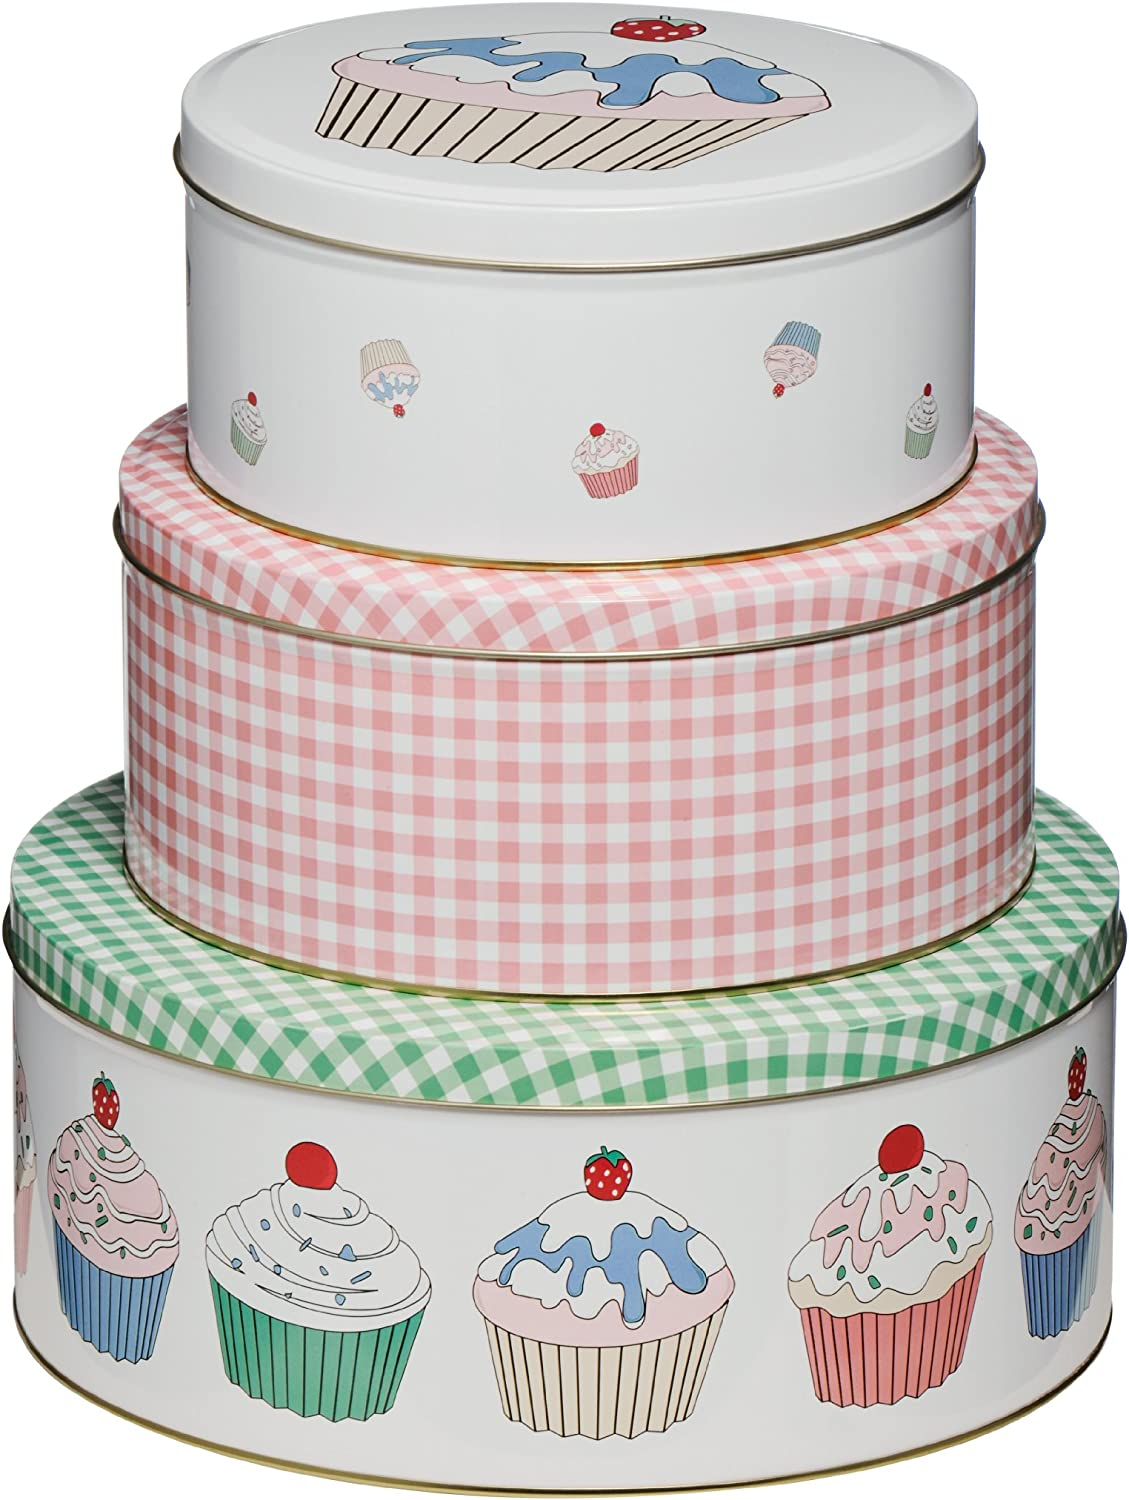 Set of 3 Cupcake Storage Tins